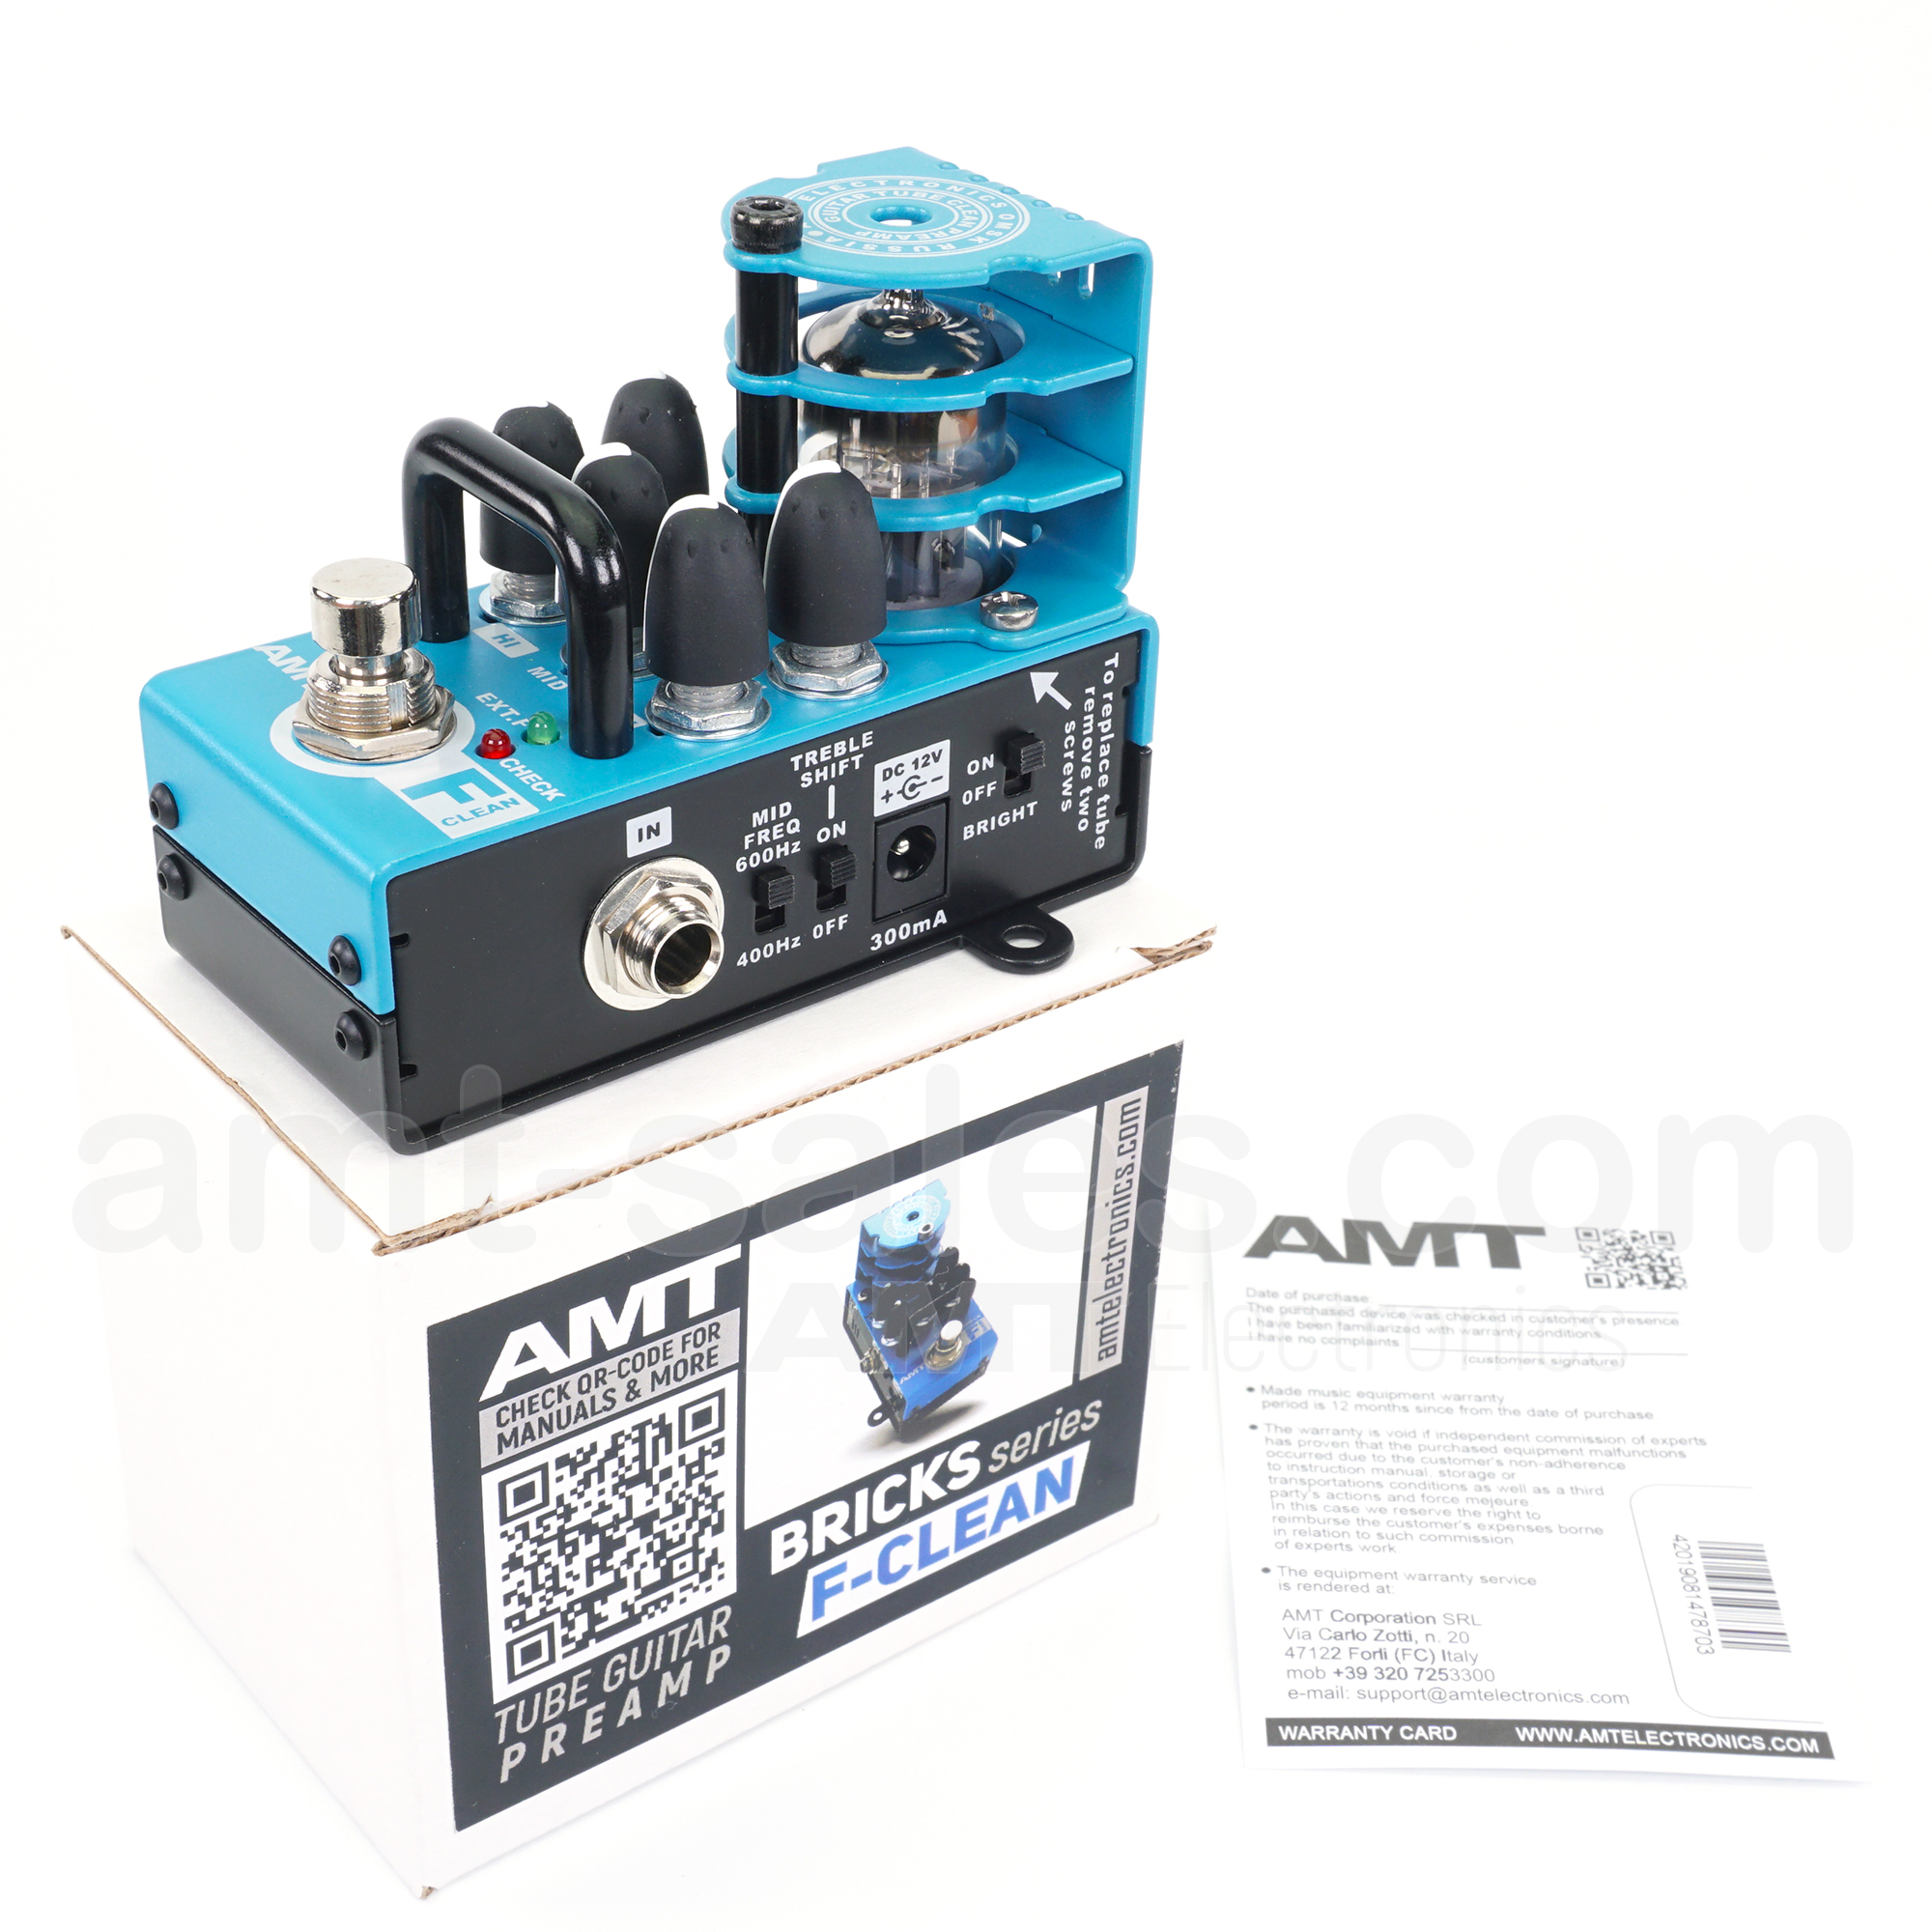 AMT Bricks F-Clean - 1 channel tube guitar preamp (Fender Twin)